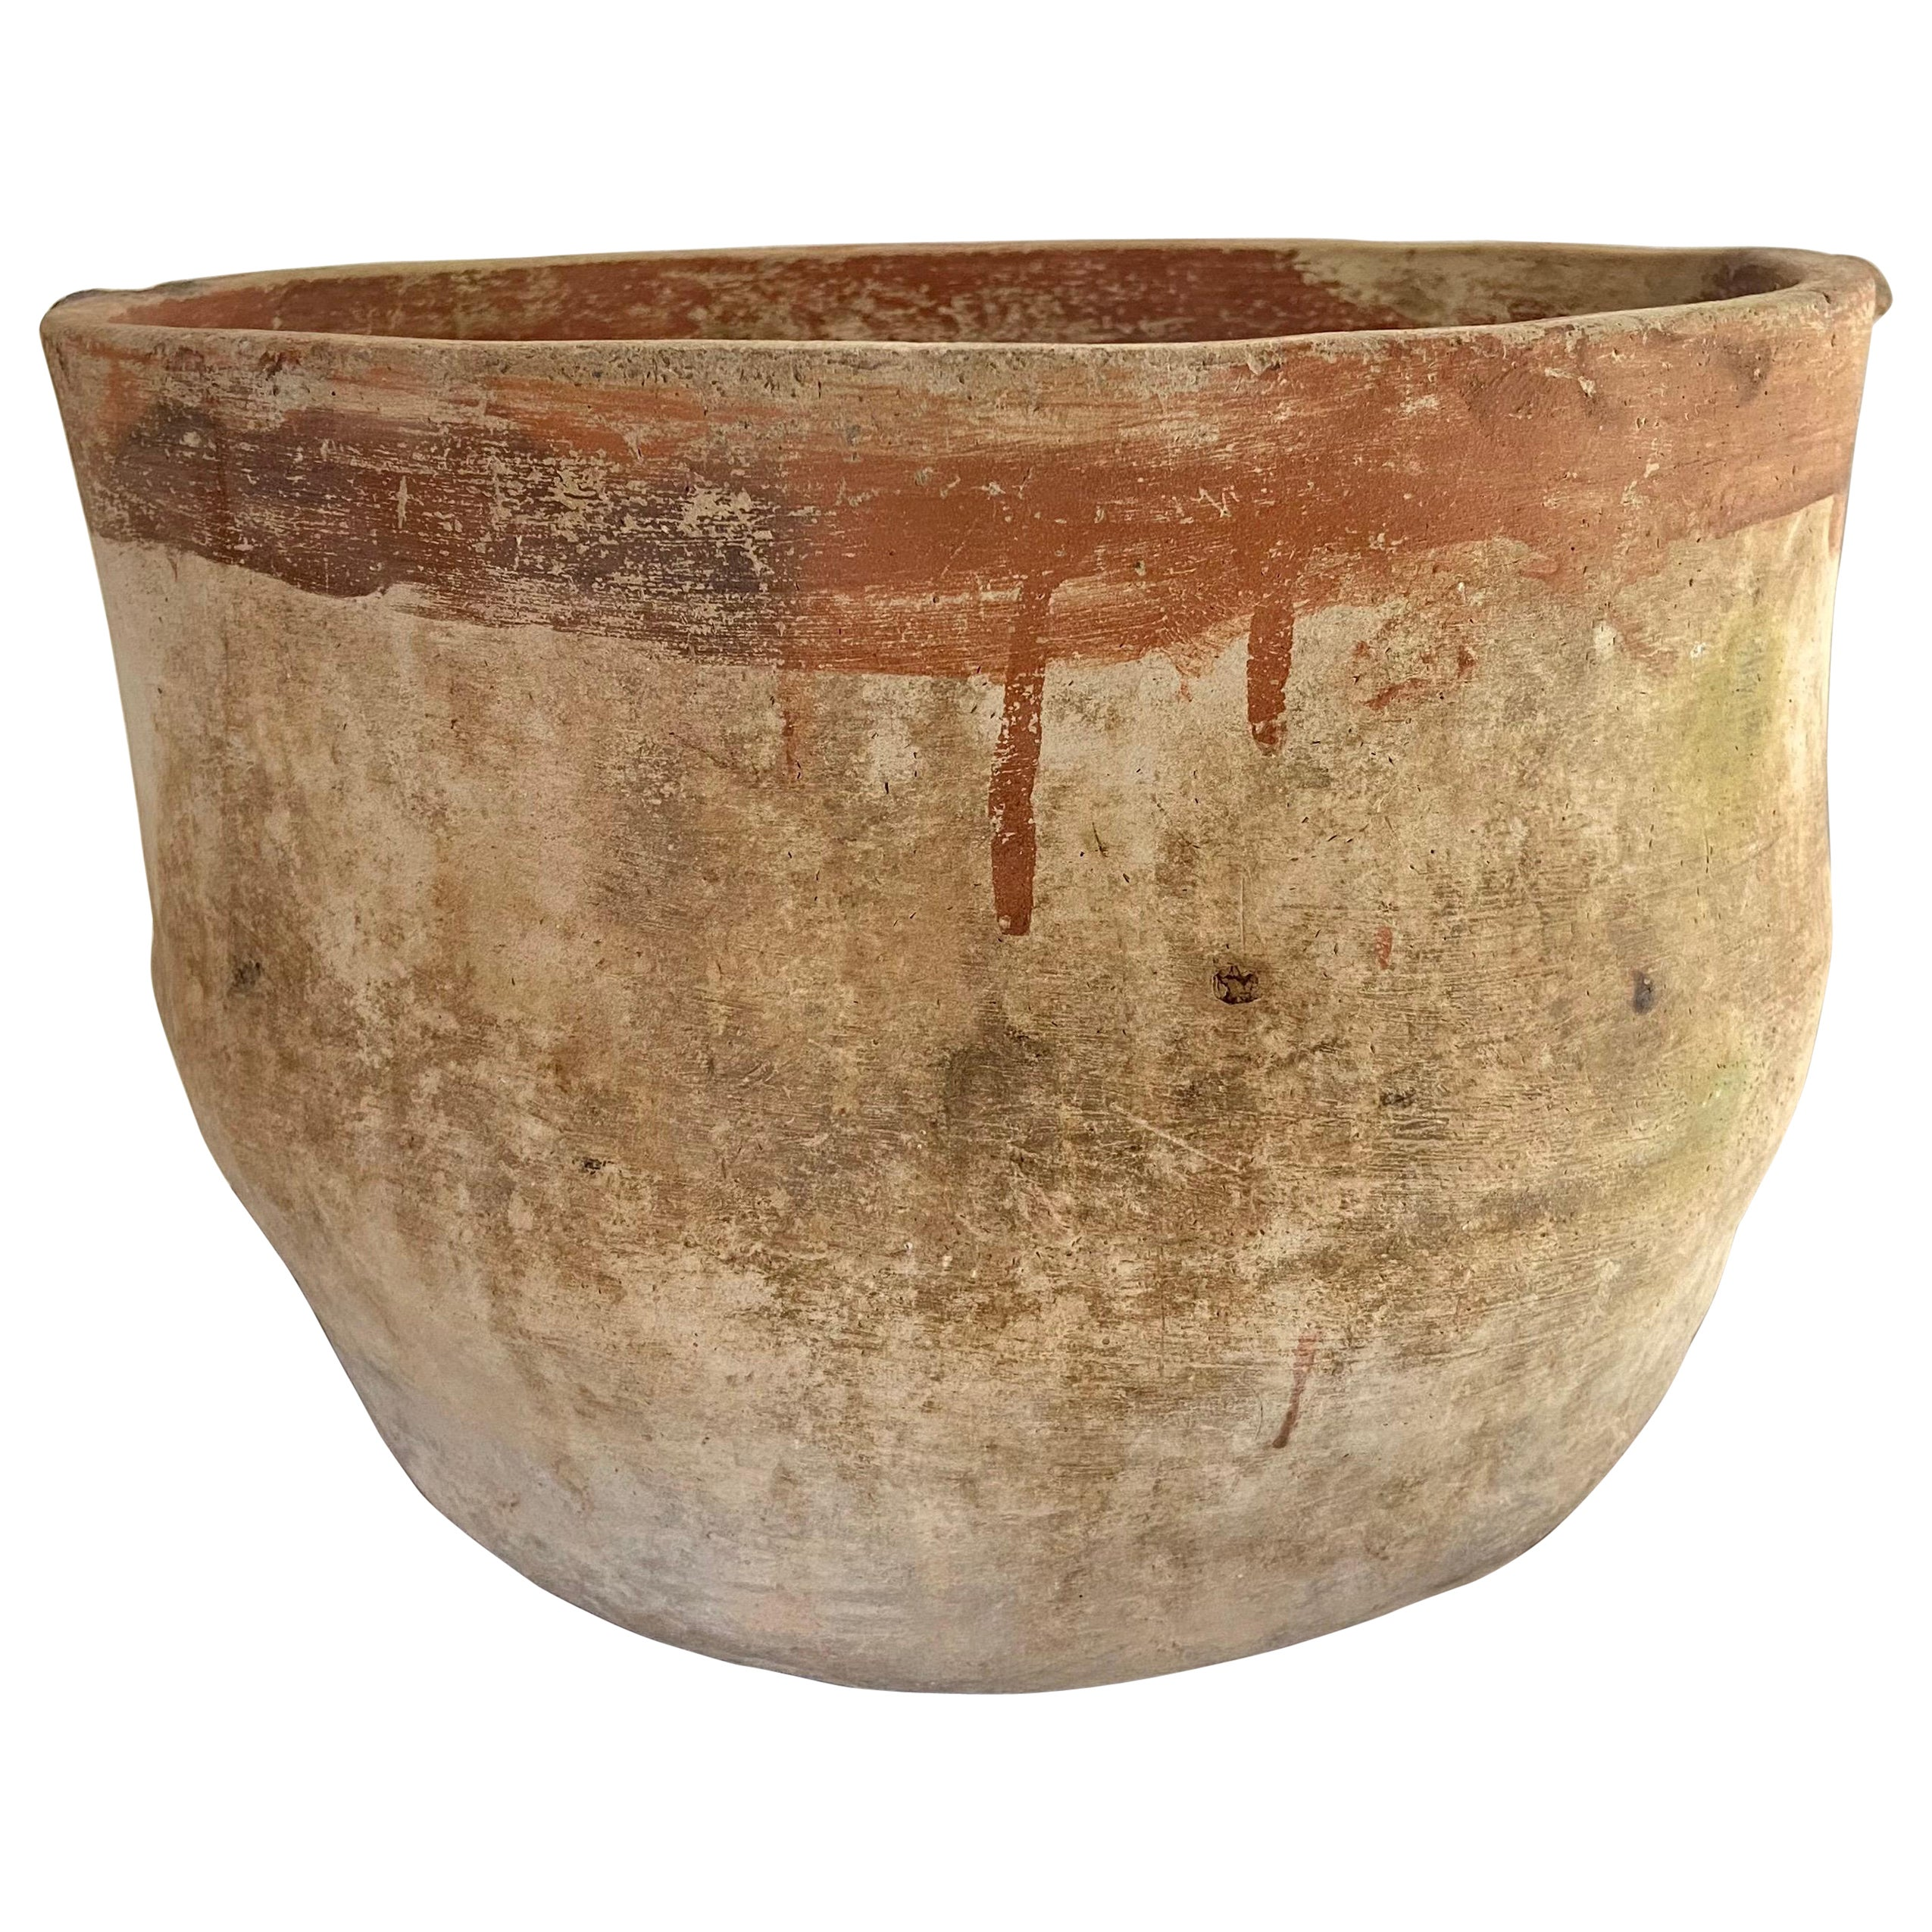 Mid 20th Century Terracotta Pot From Mexico